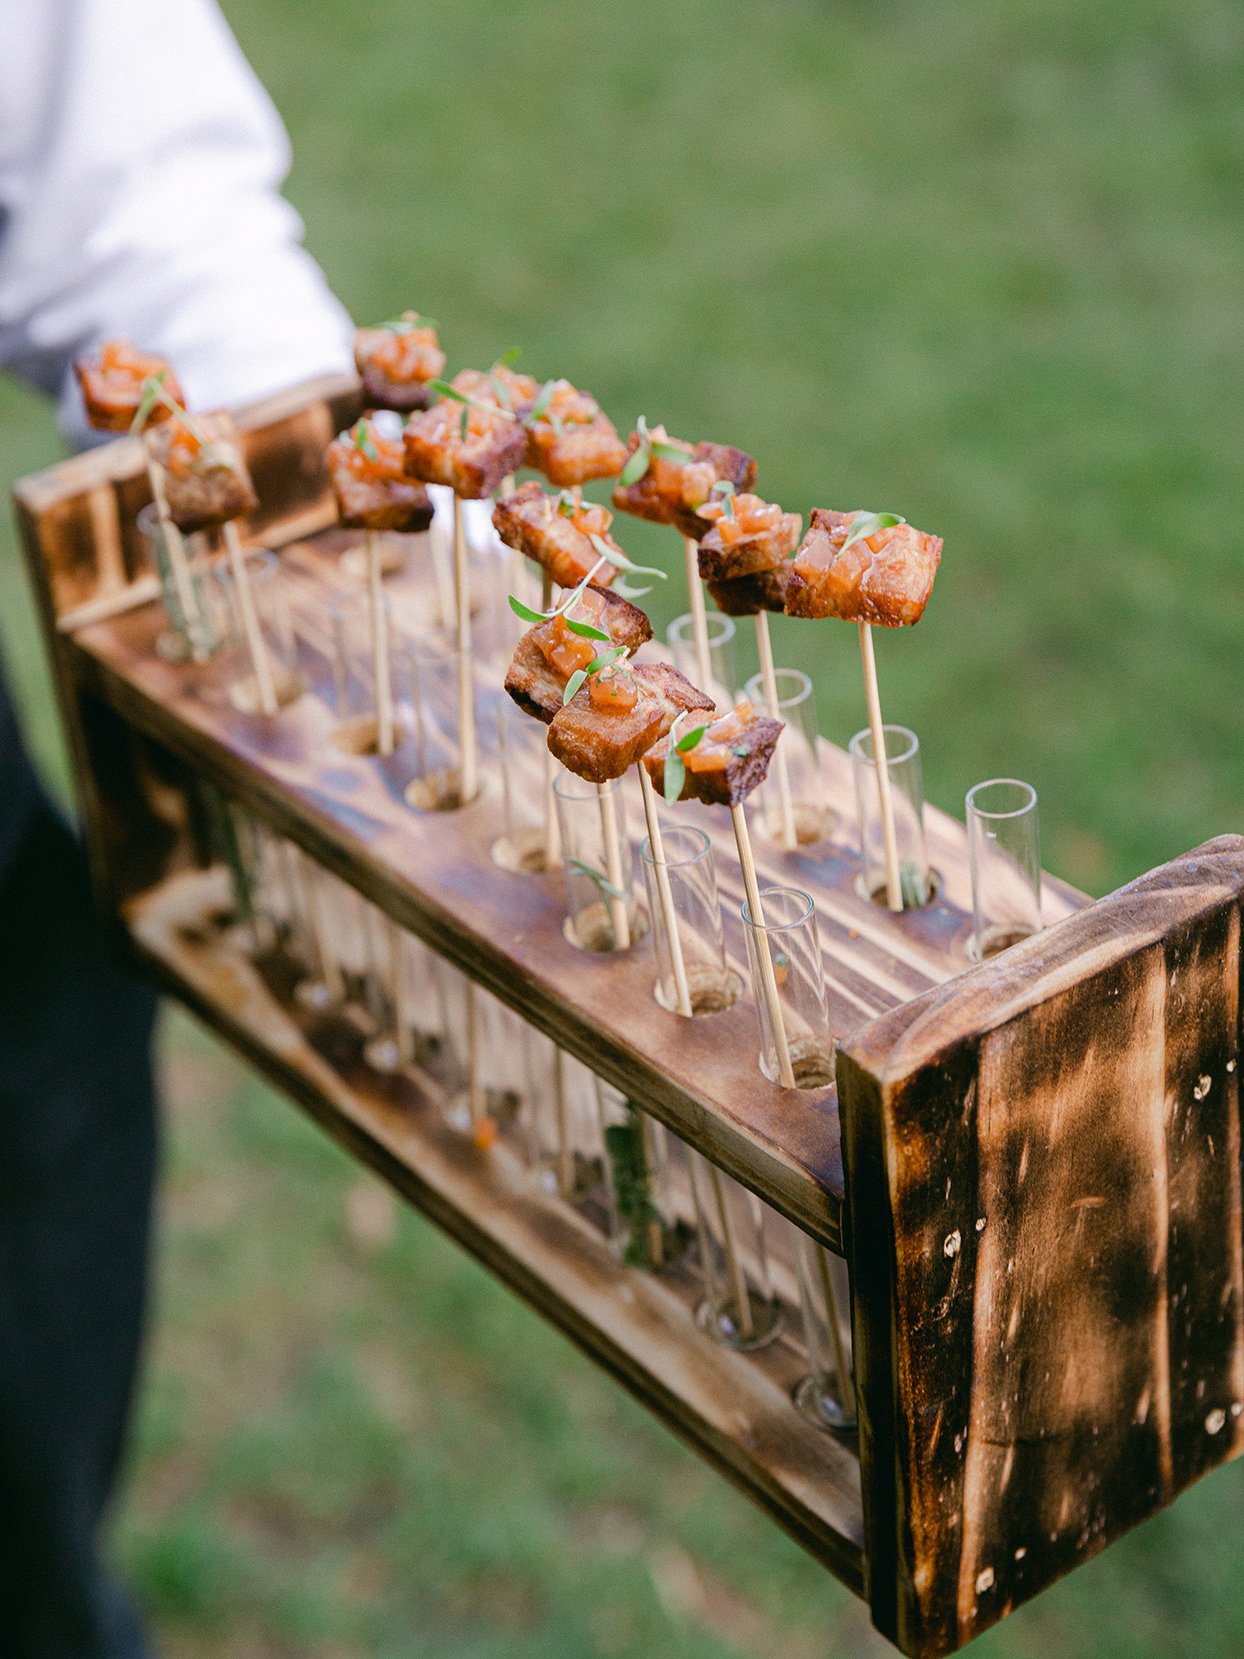 hors d'oeuvres during wedding cocktail hour